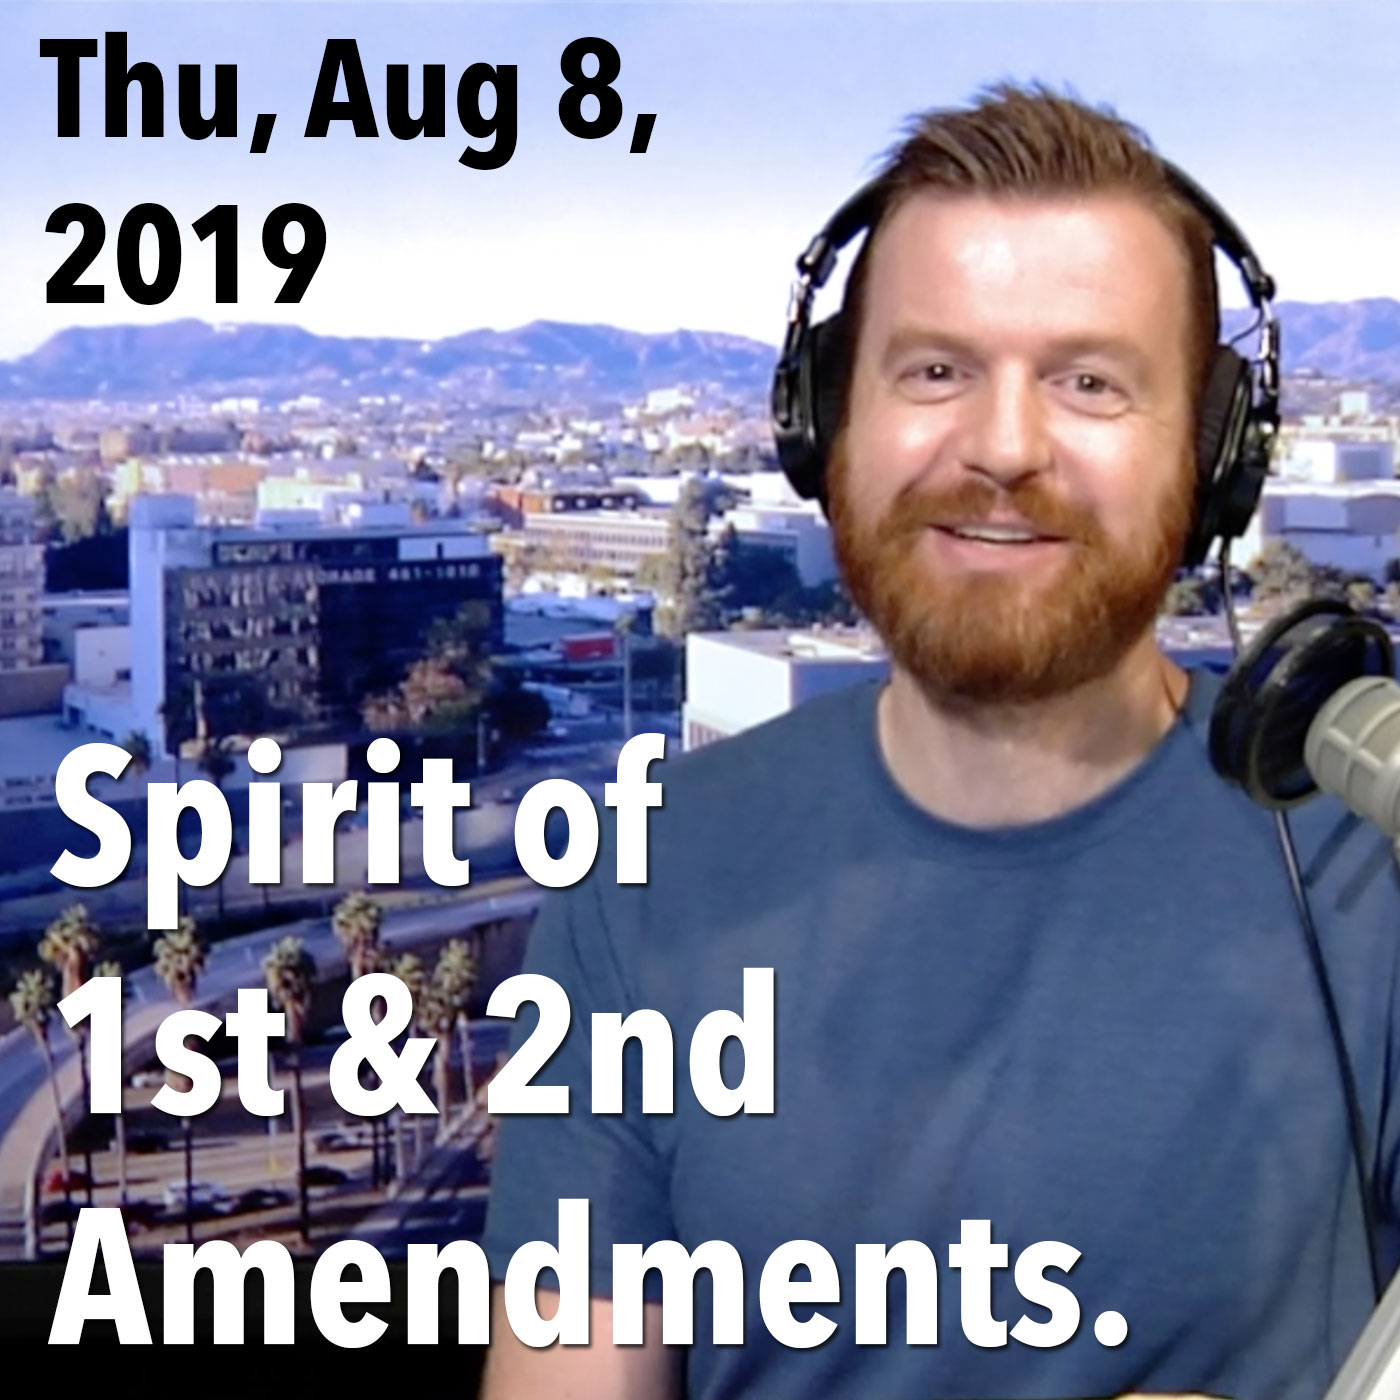 James's square thumbnail from today's show, Thur, Aug 8, 2019: Spirit of the First and Second Amendments